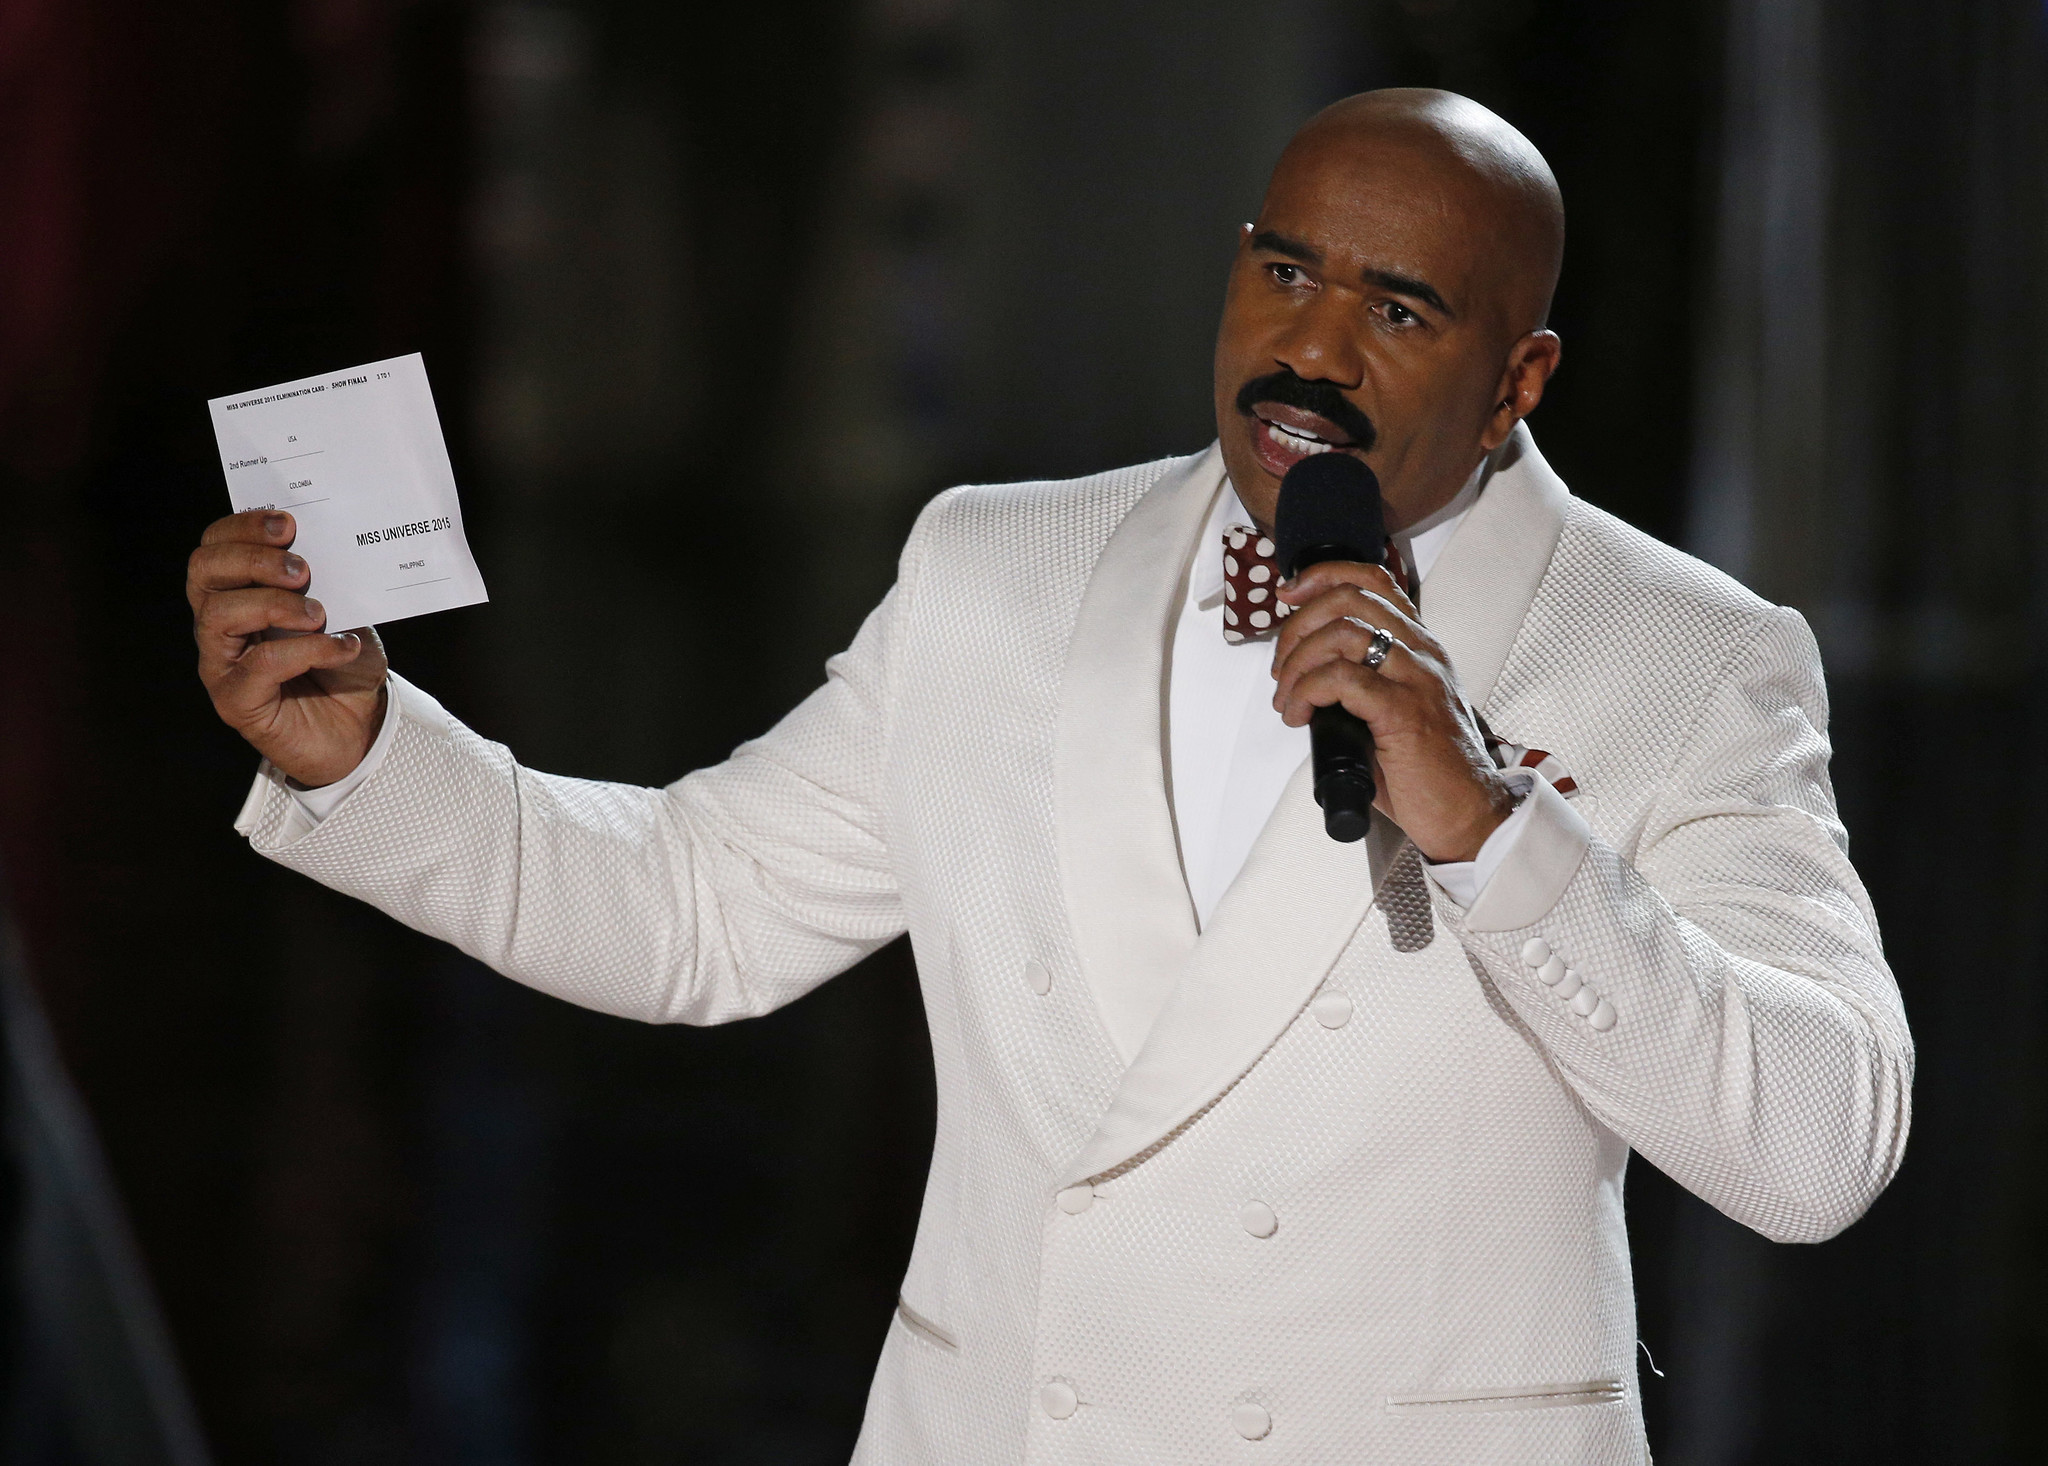 ct steve harvey responds to oscars mix up 20170227 steve harvey responds to oscars mix up chicago tribune,Steve Harvey Meme Oscars